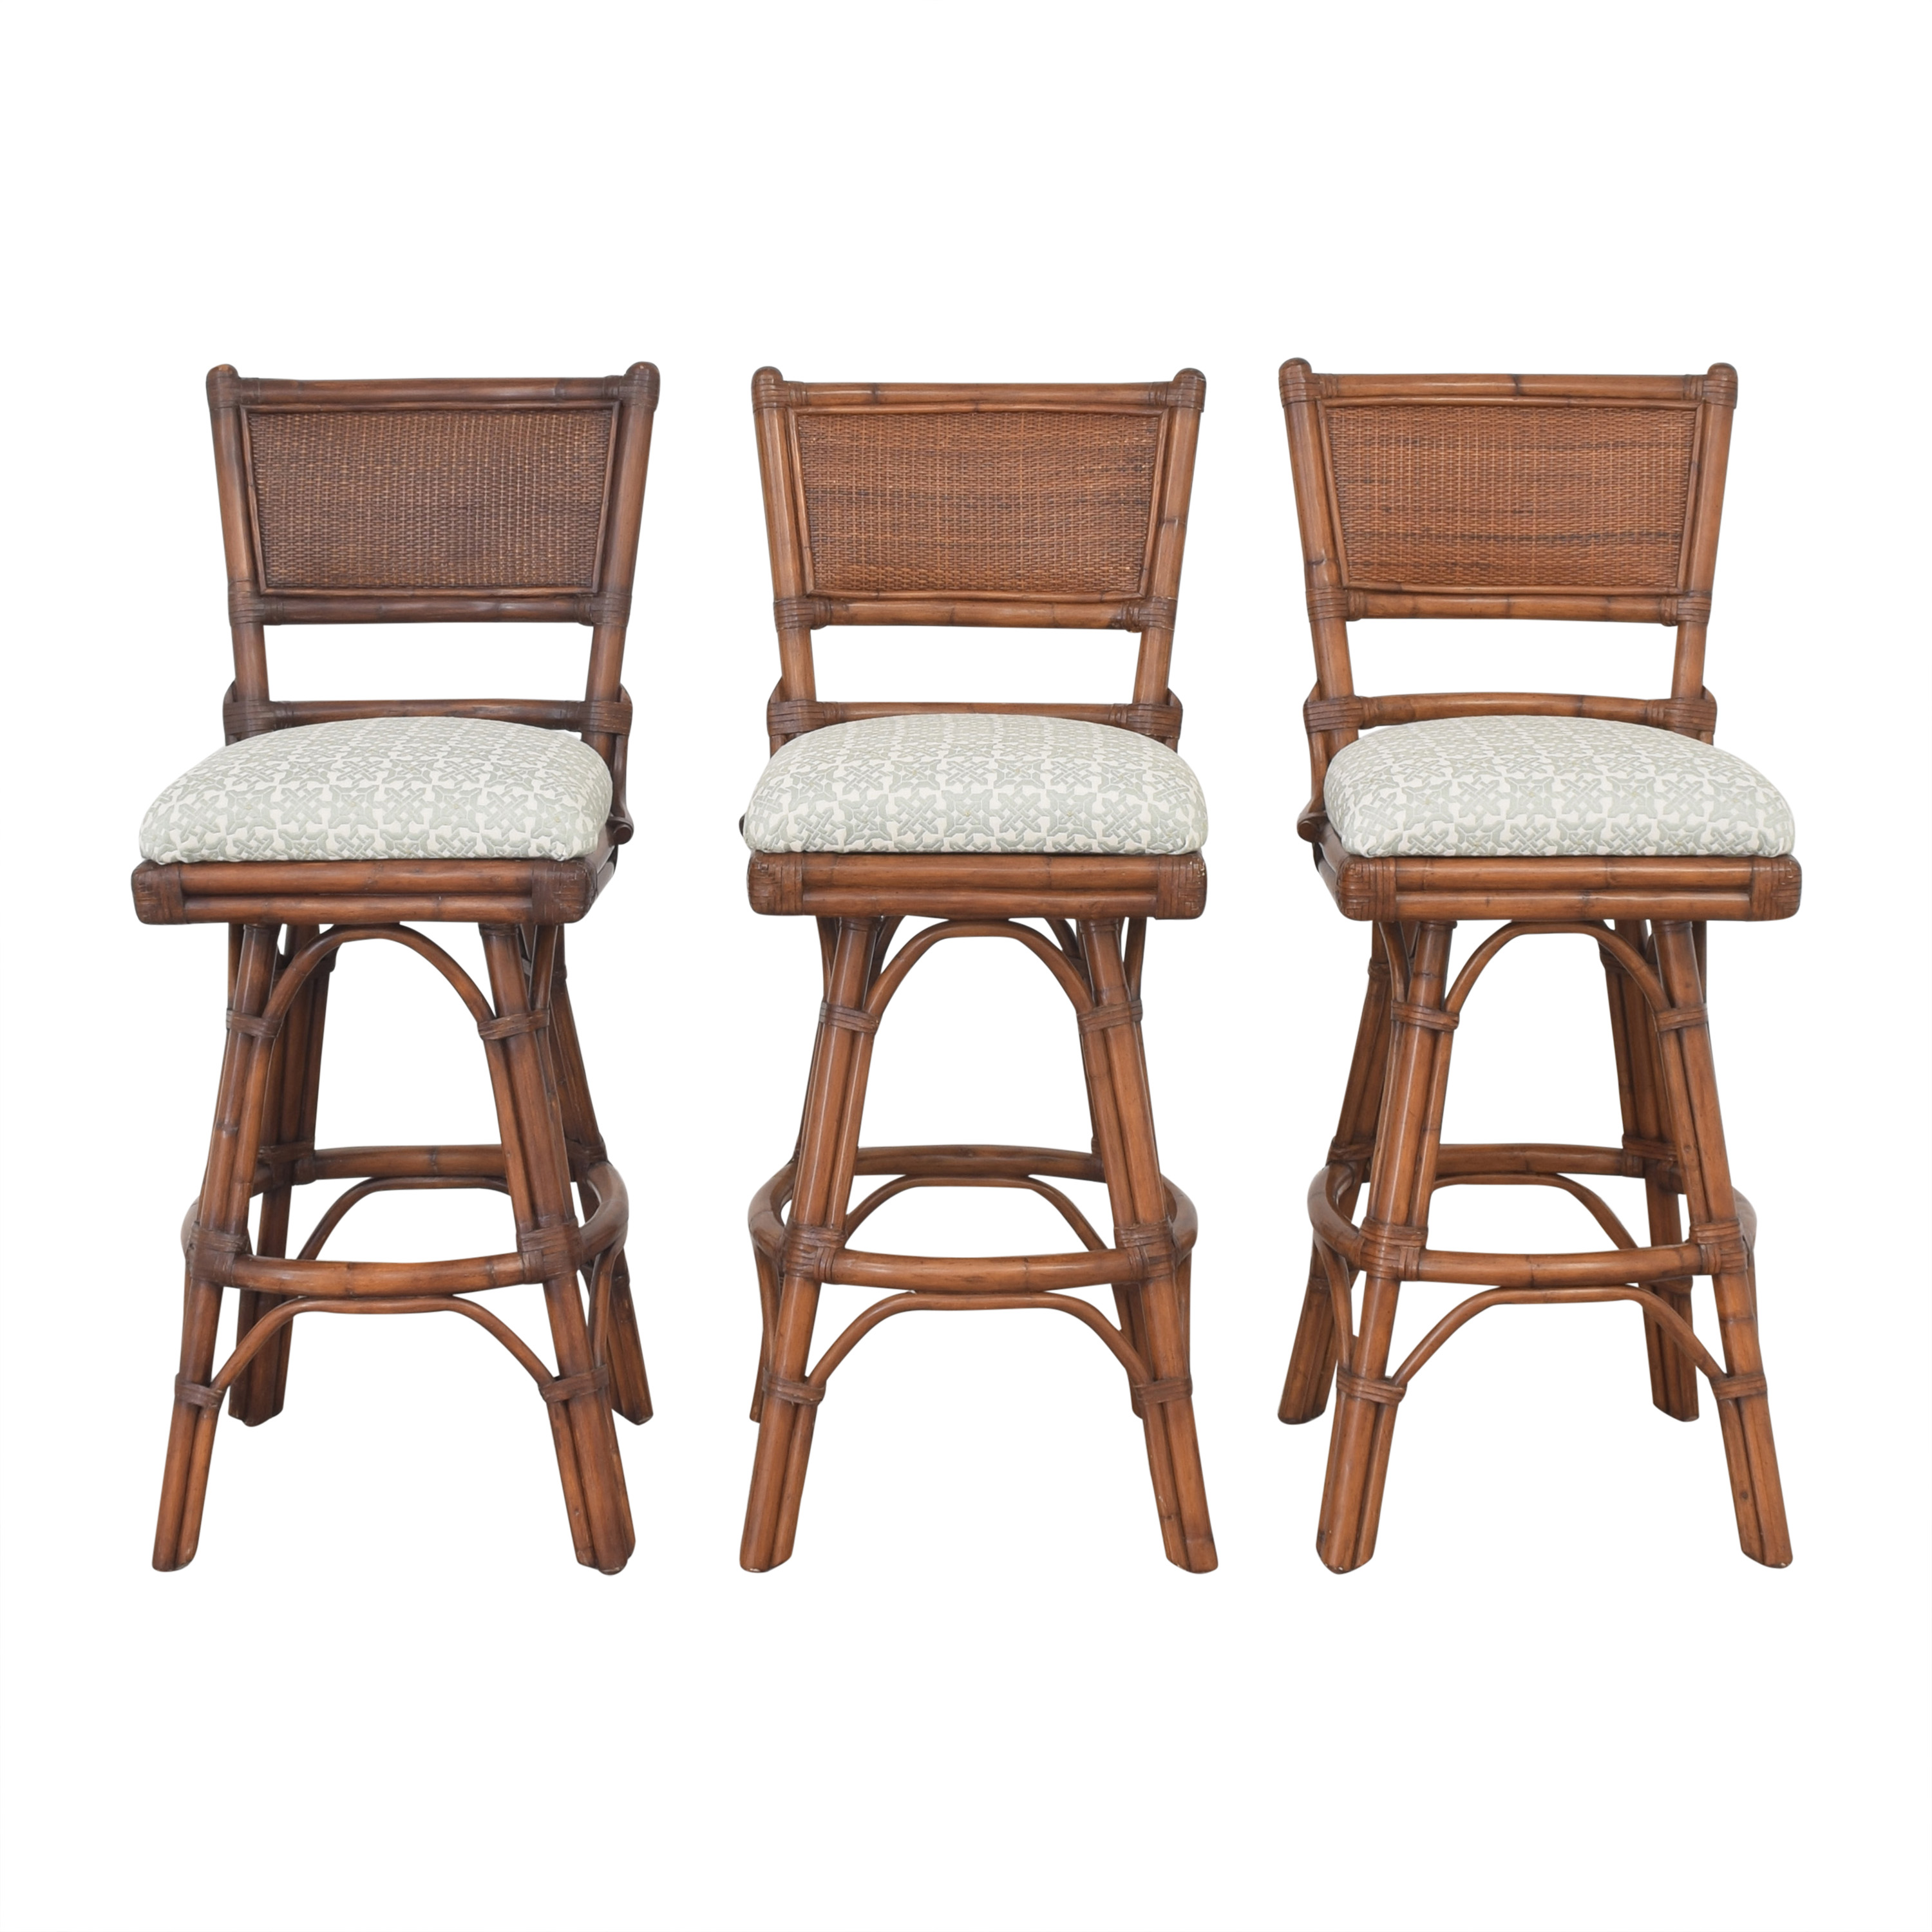 Bamboo Style Counter Stools price